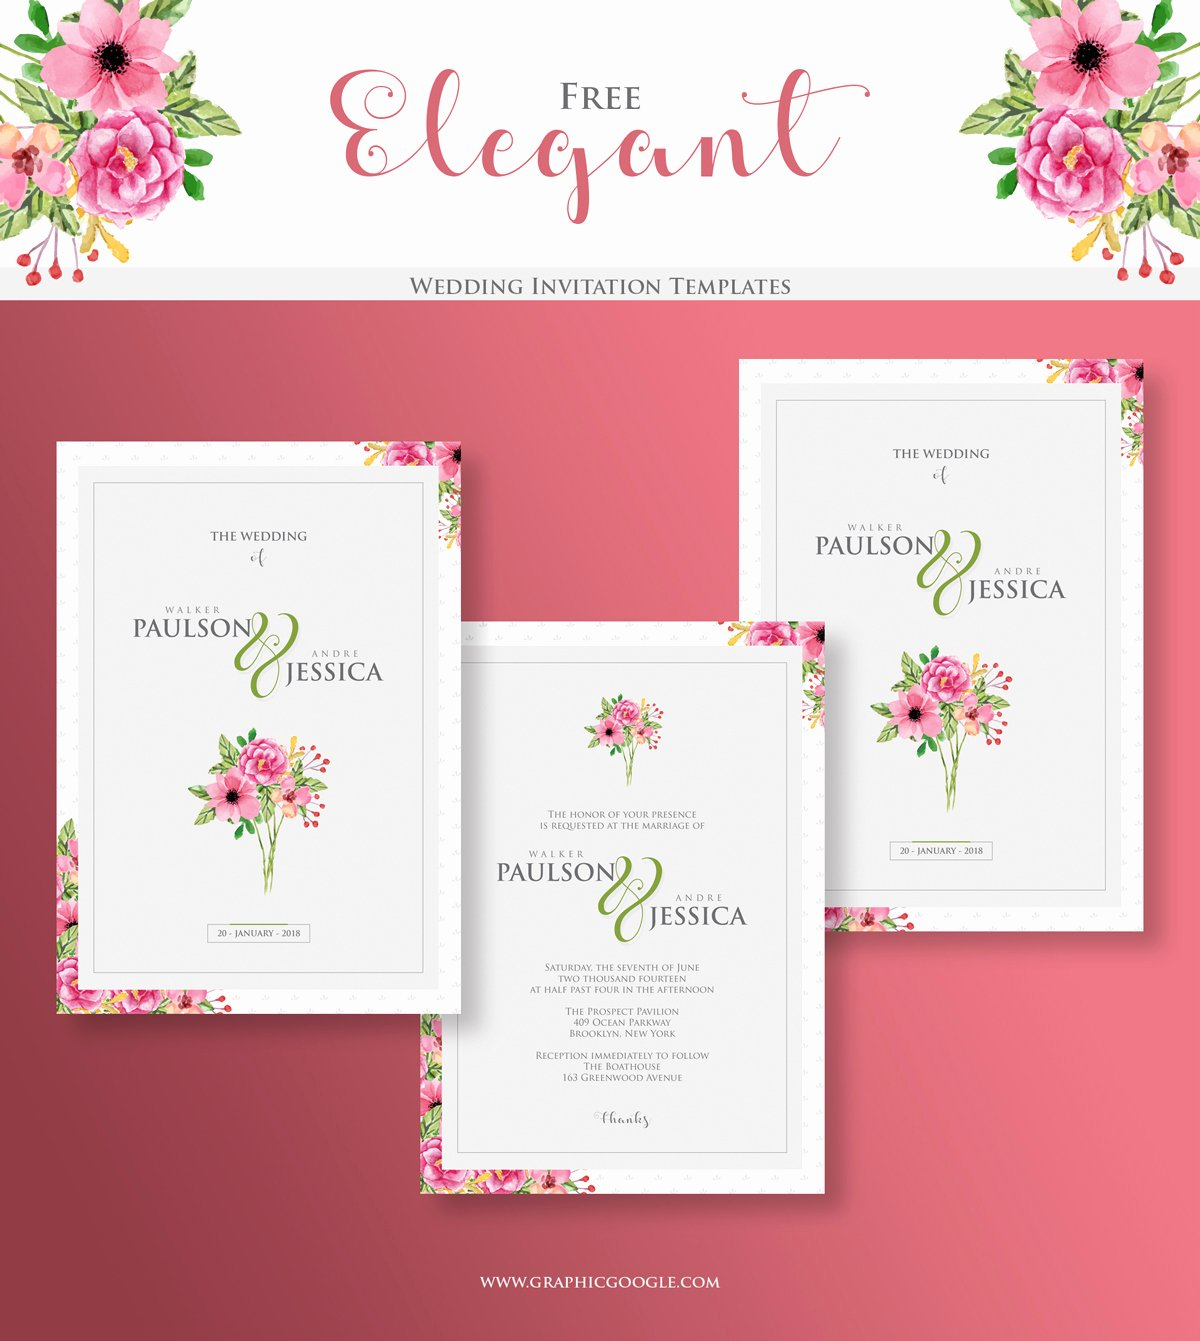 Wedding Invitation Template Free Download Awesome Elegant Wedding Free Invitation Templates Engine Templates